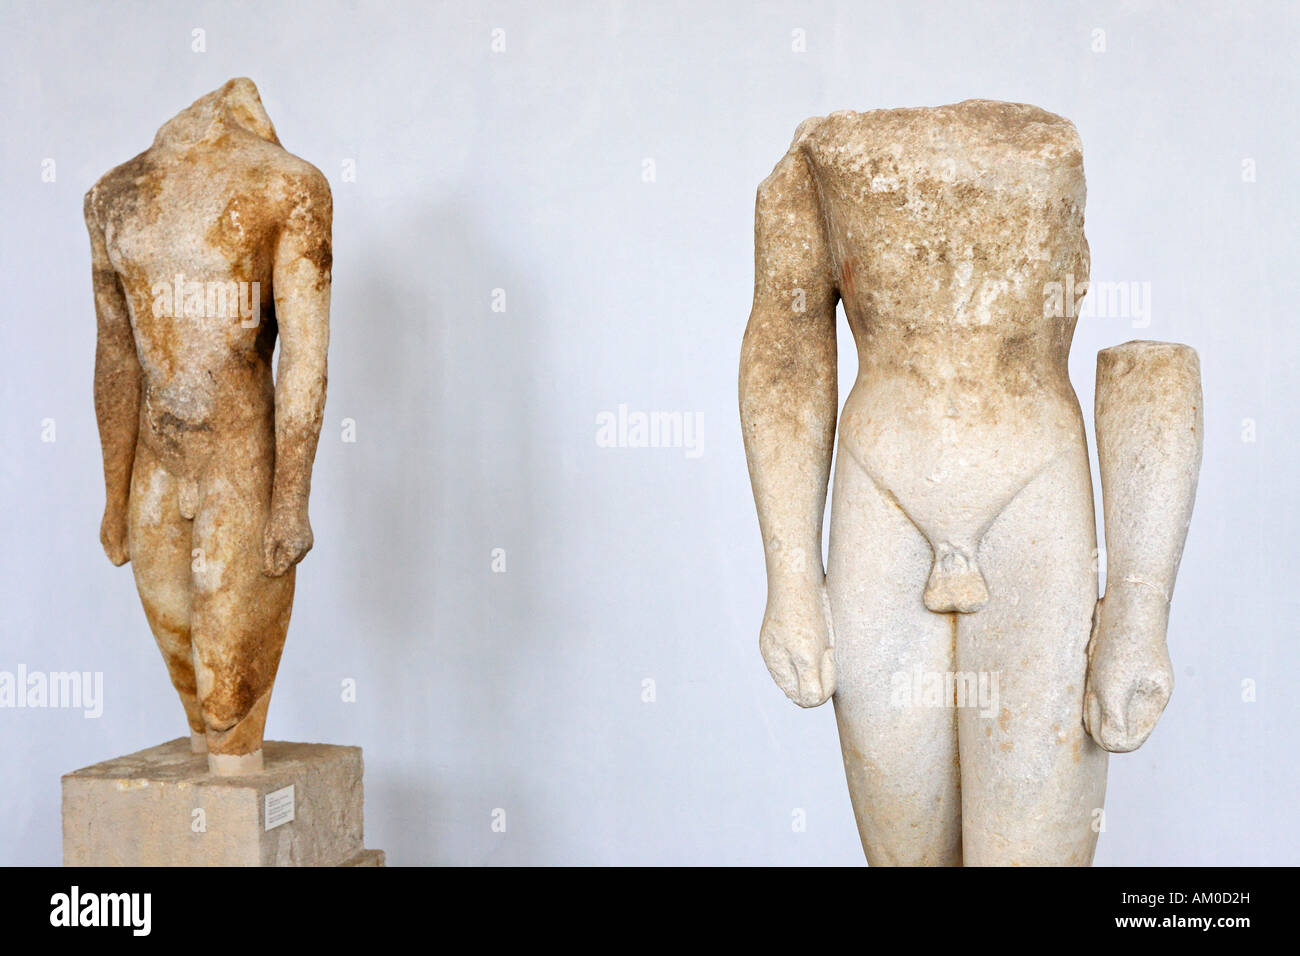 Statues of Kouroi on the left A 1742 on the right A 4048 made by craftsmen from Naxos 550 BC in Museum, Delos, Greece - Stock Image